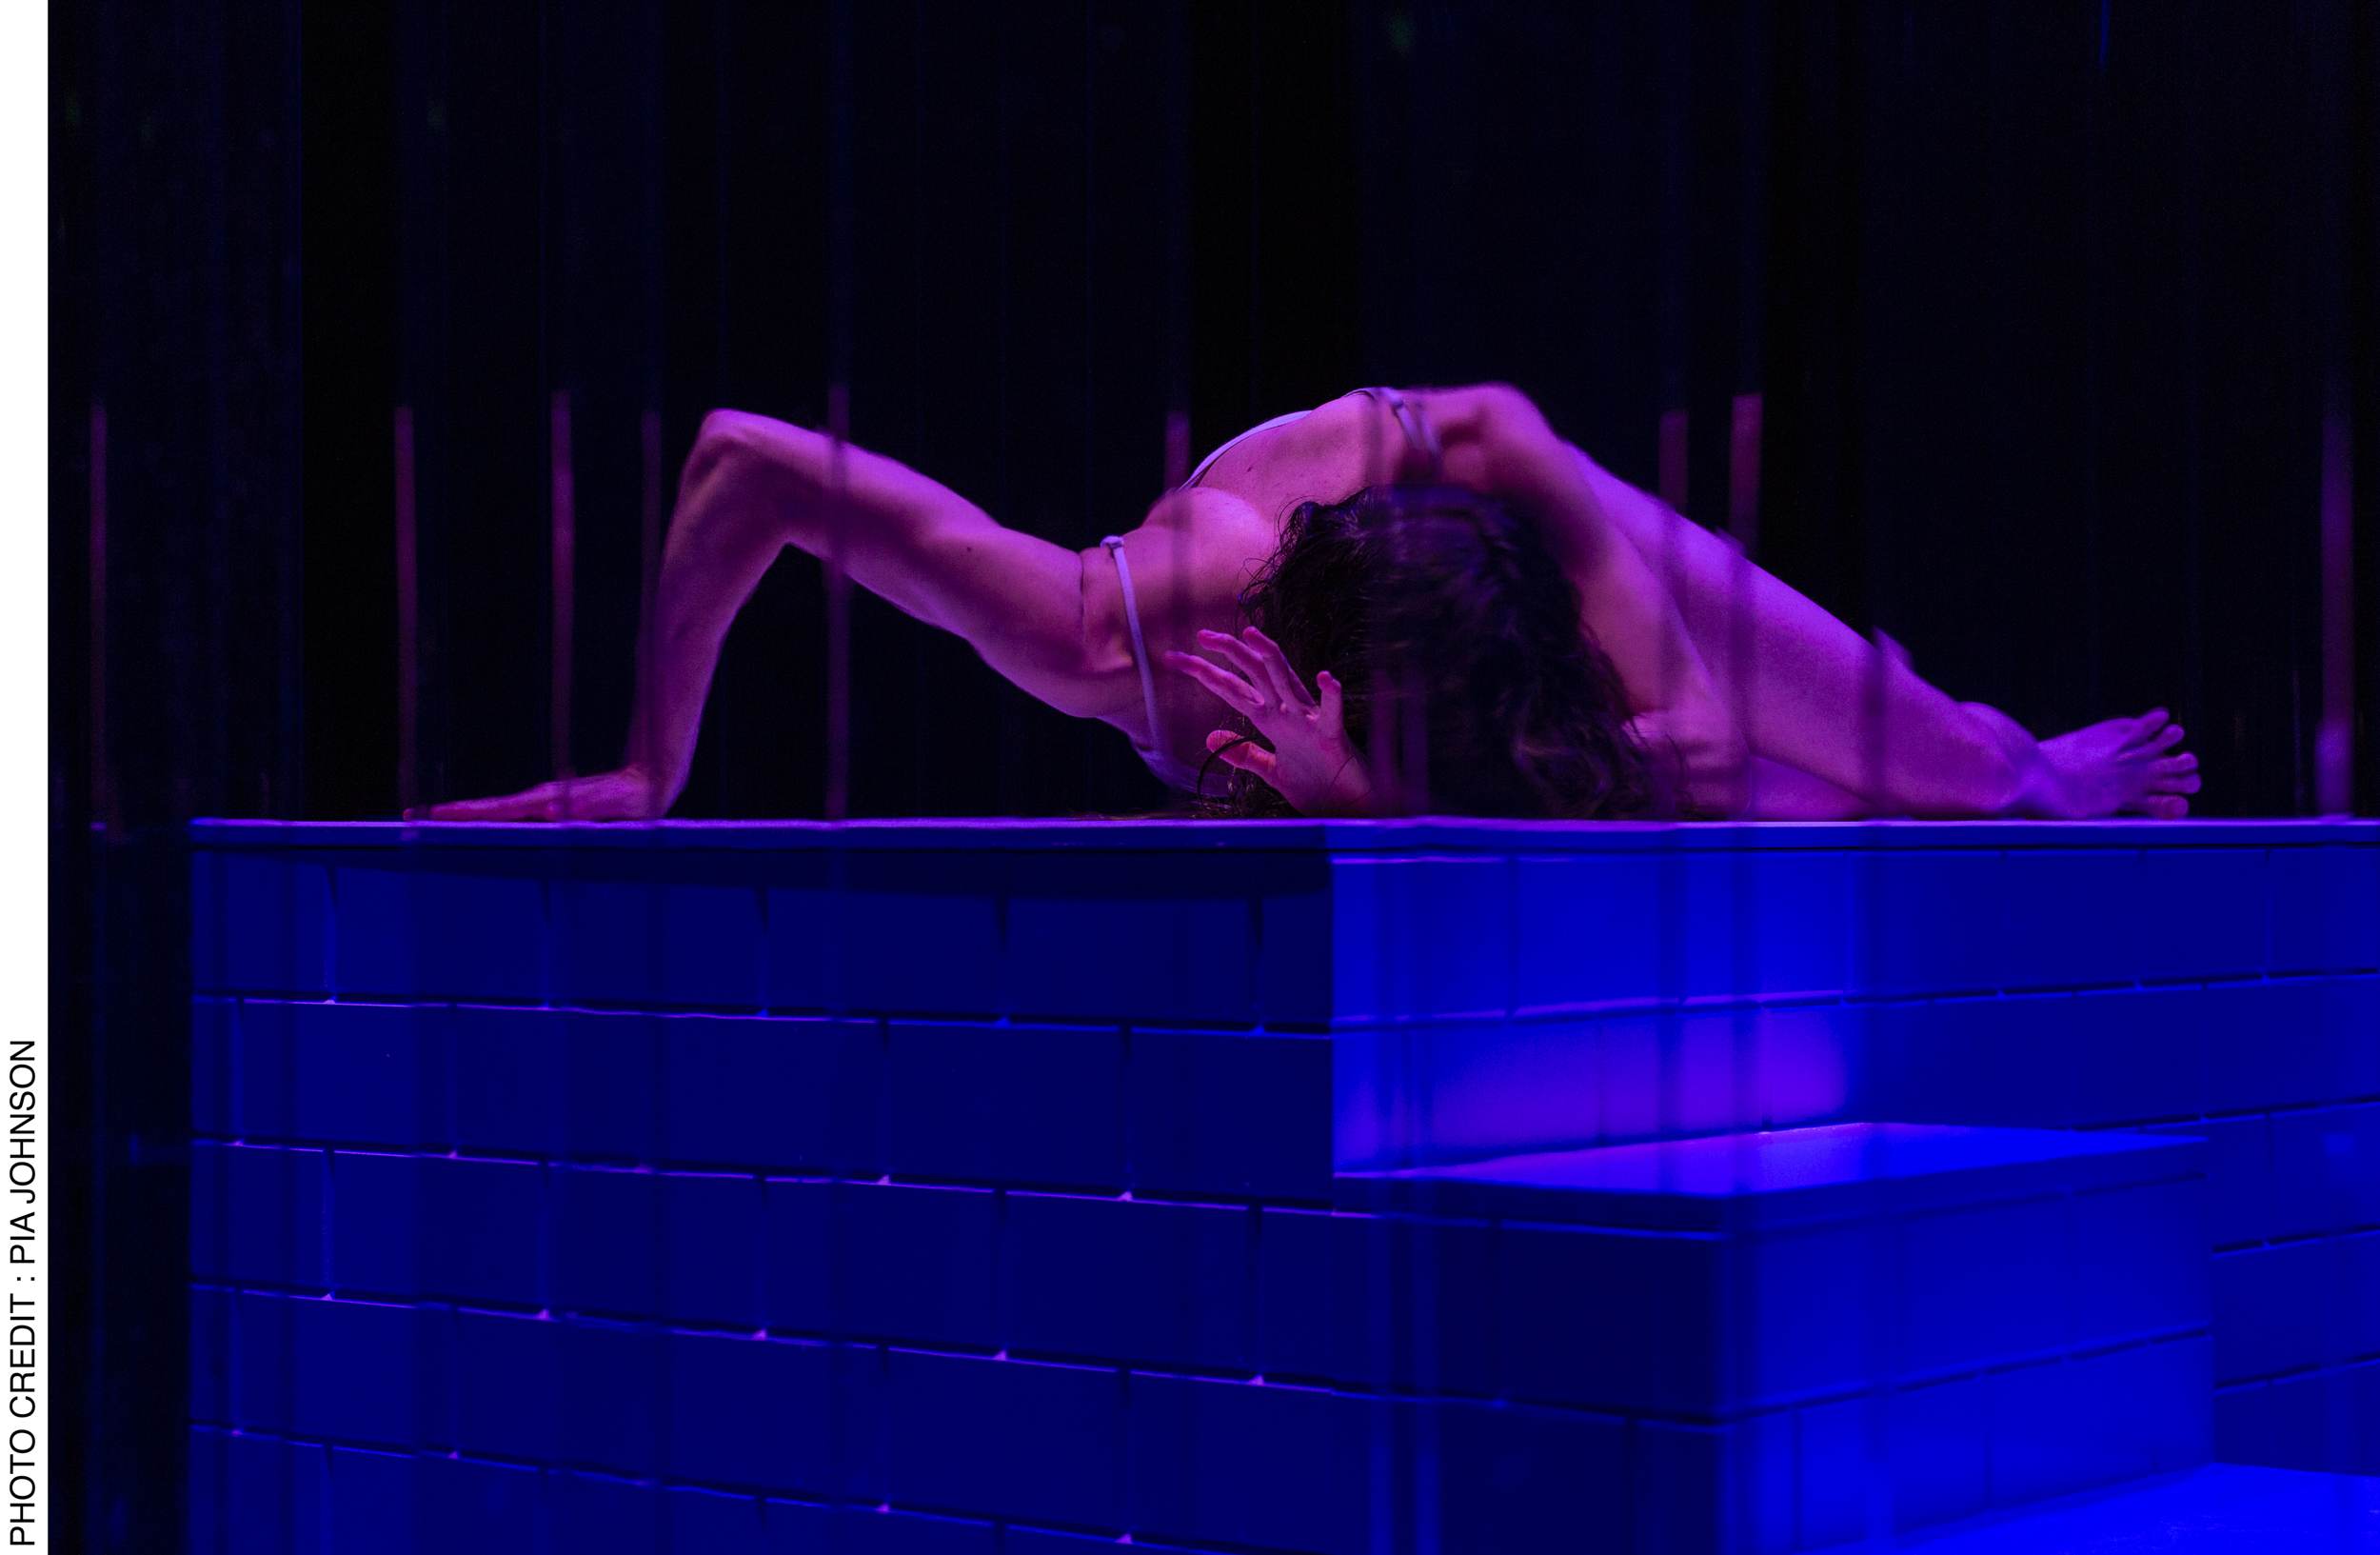 <p>At the end of Act 2, performer Lauren Langlois embodies possession with astonishing physicality. Photo Credit: Pia&nbsp;Johnson.</p>